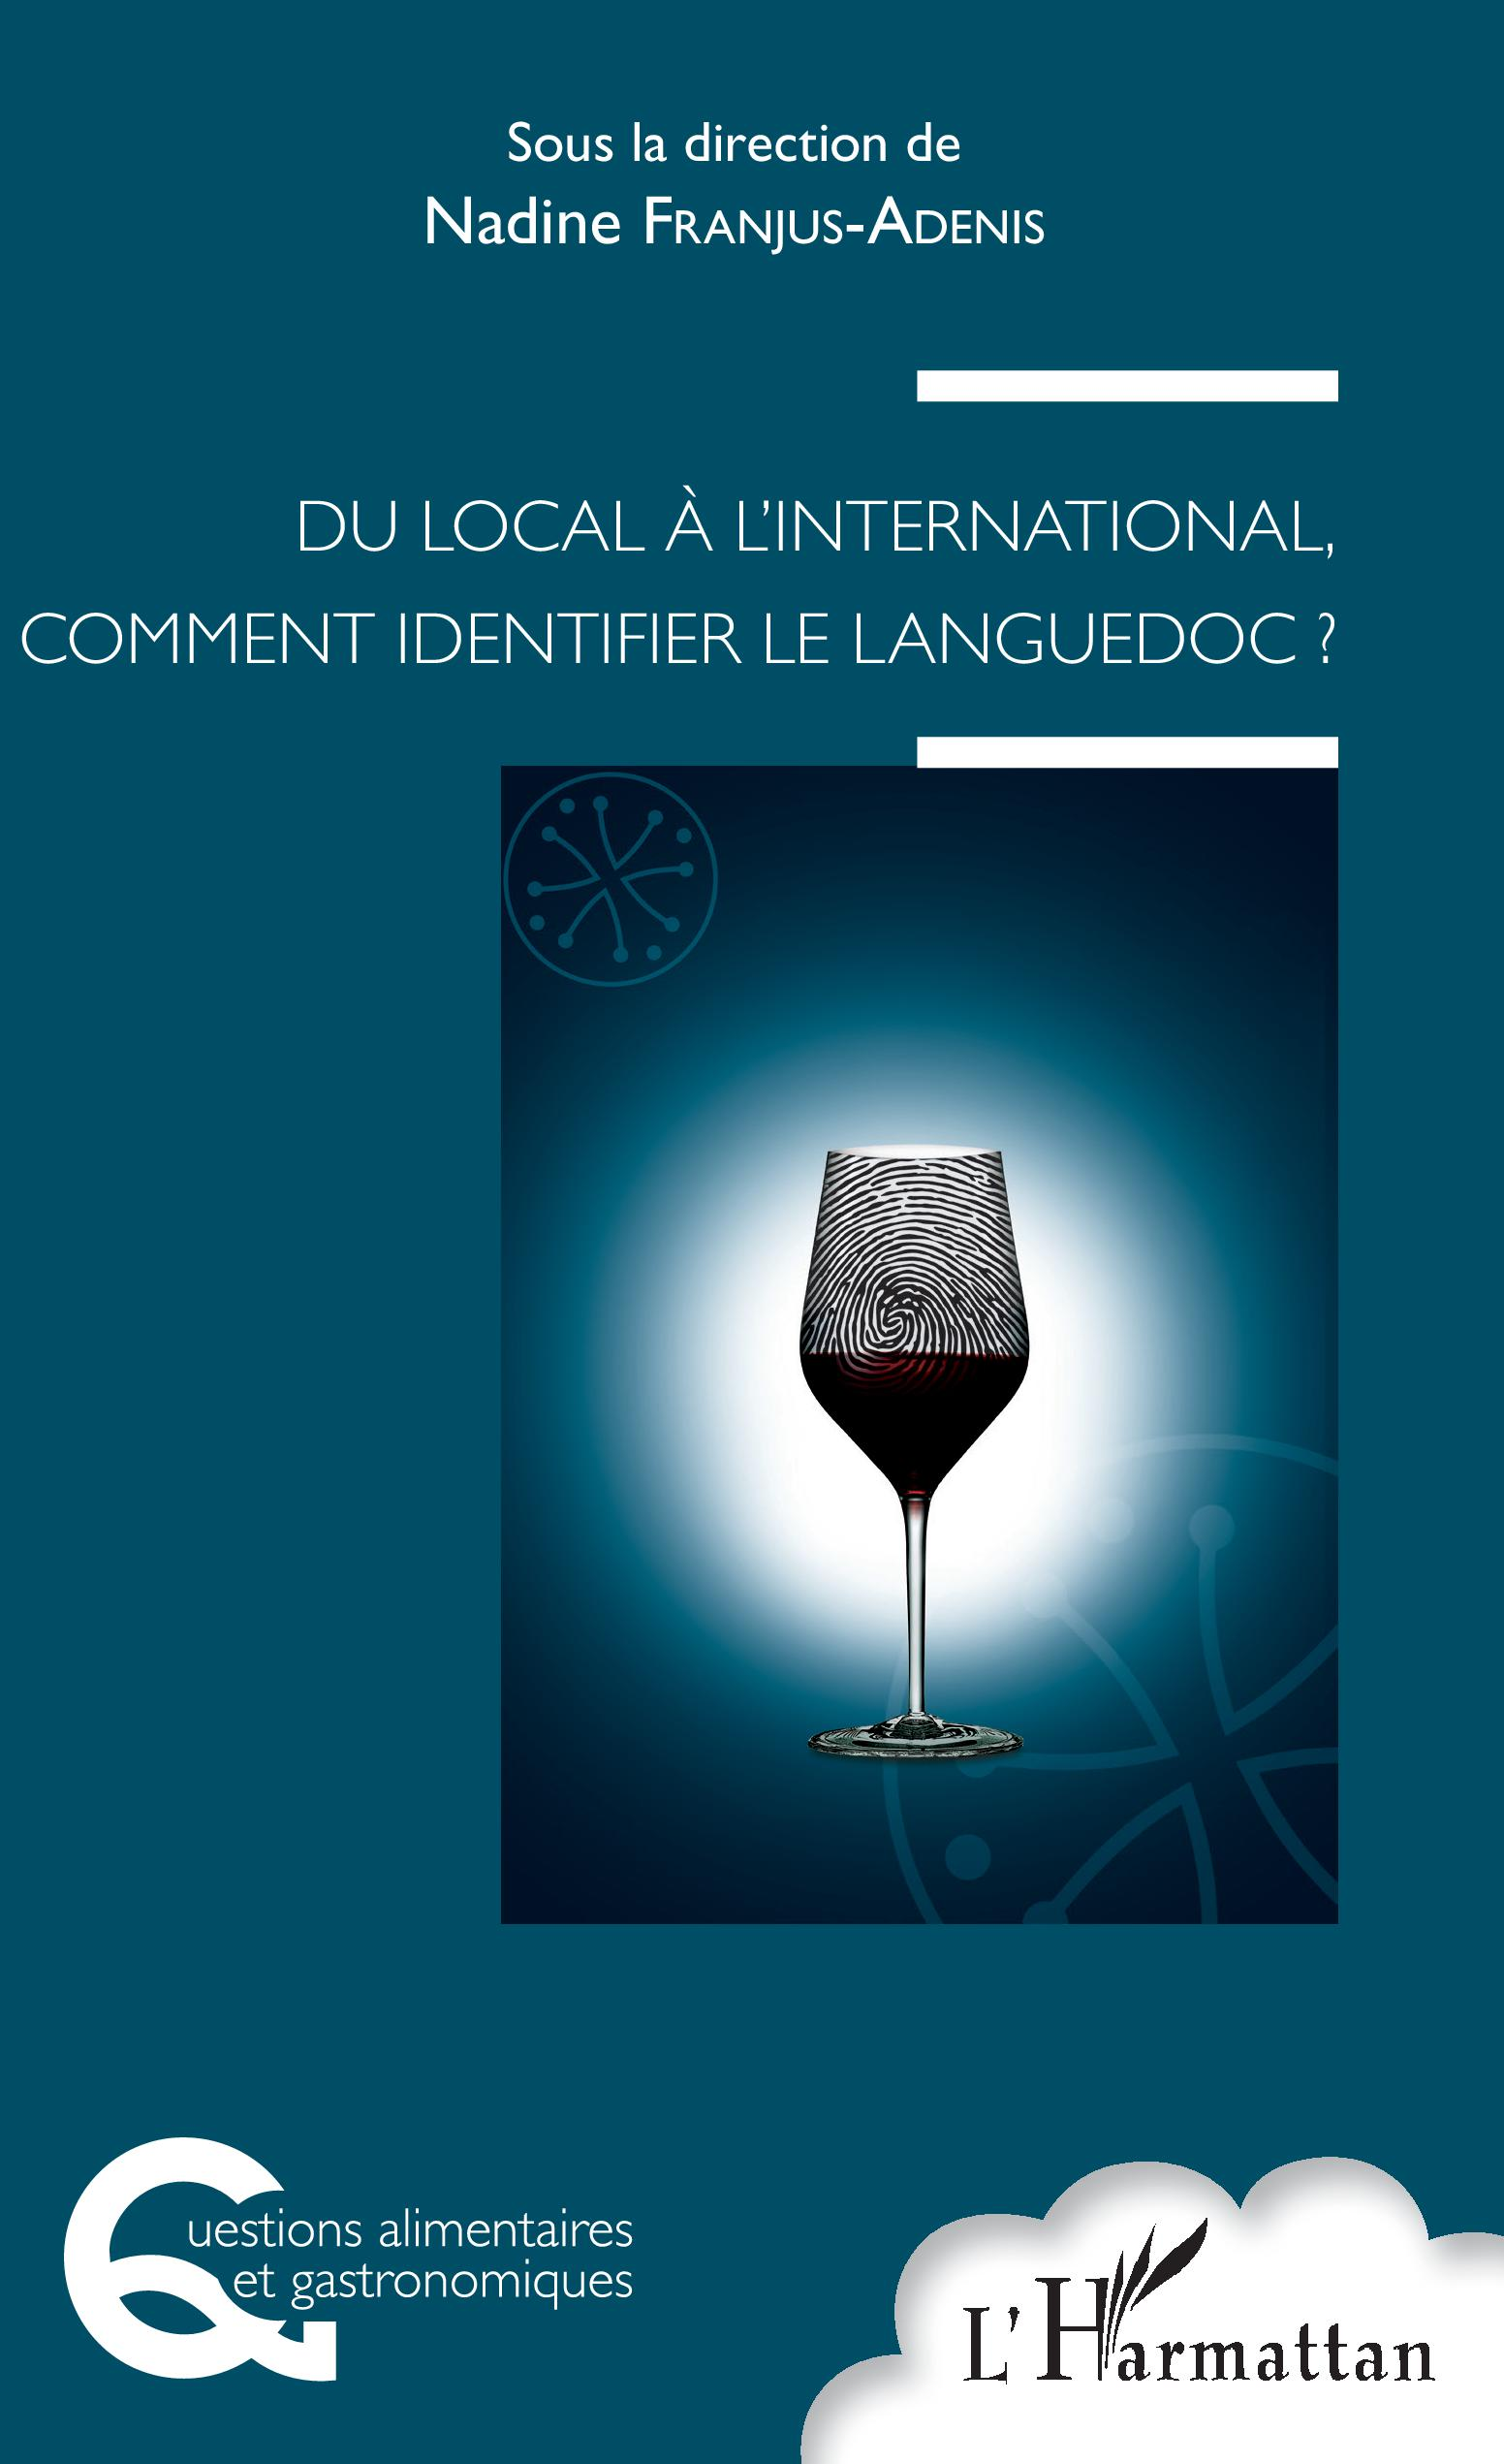 Du local à l'international, comment identifier un Languedoc ?